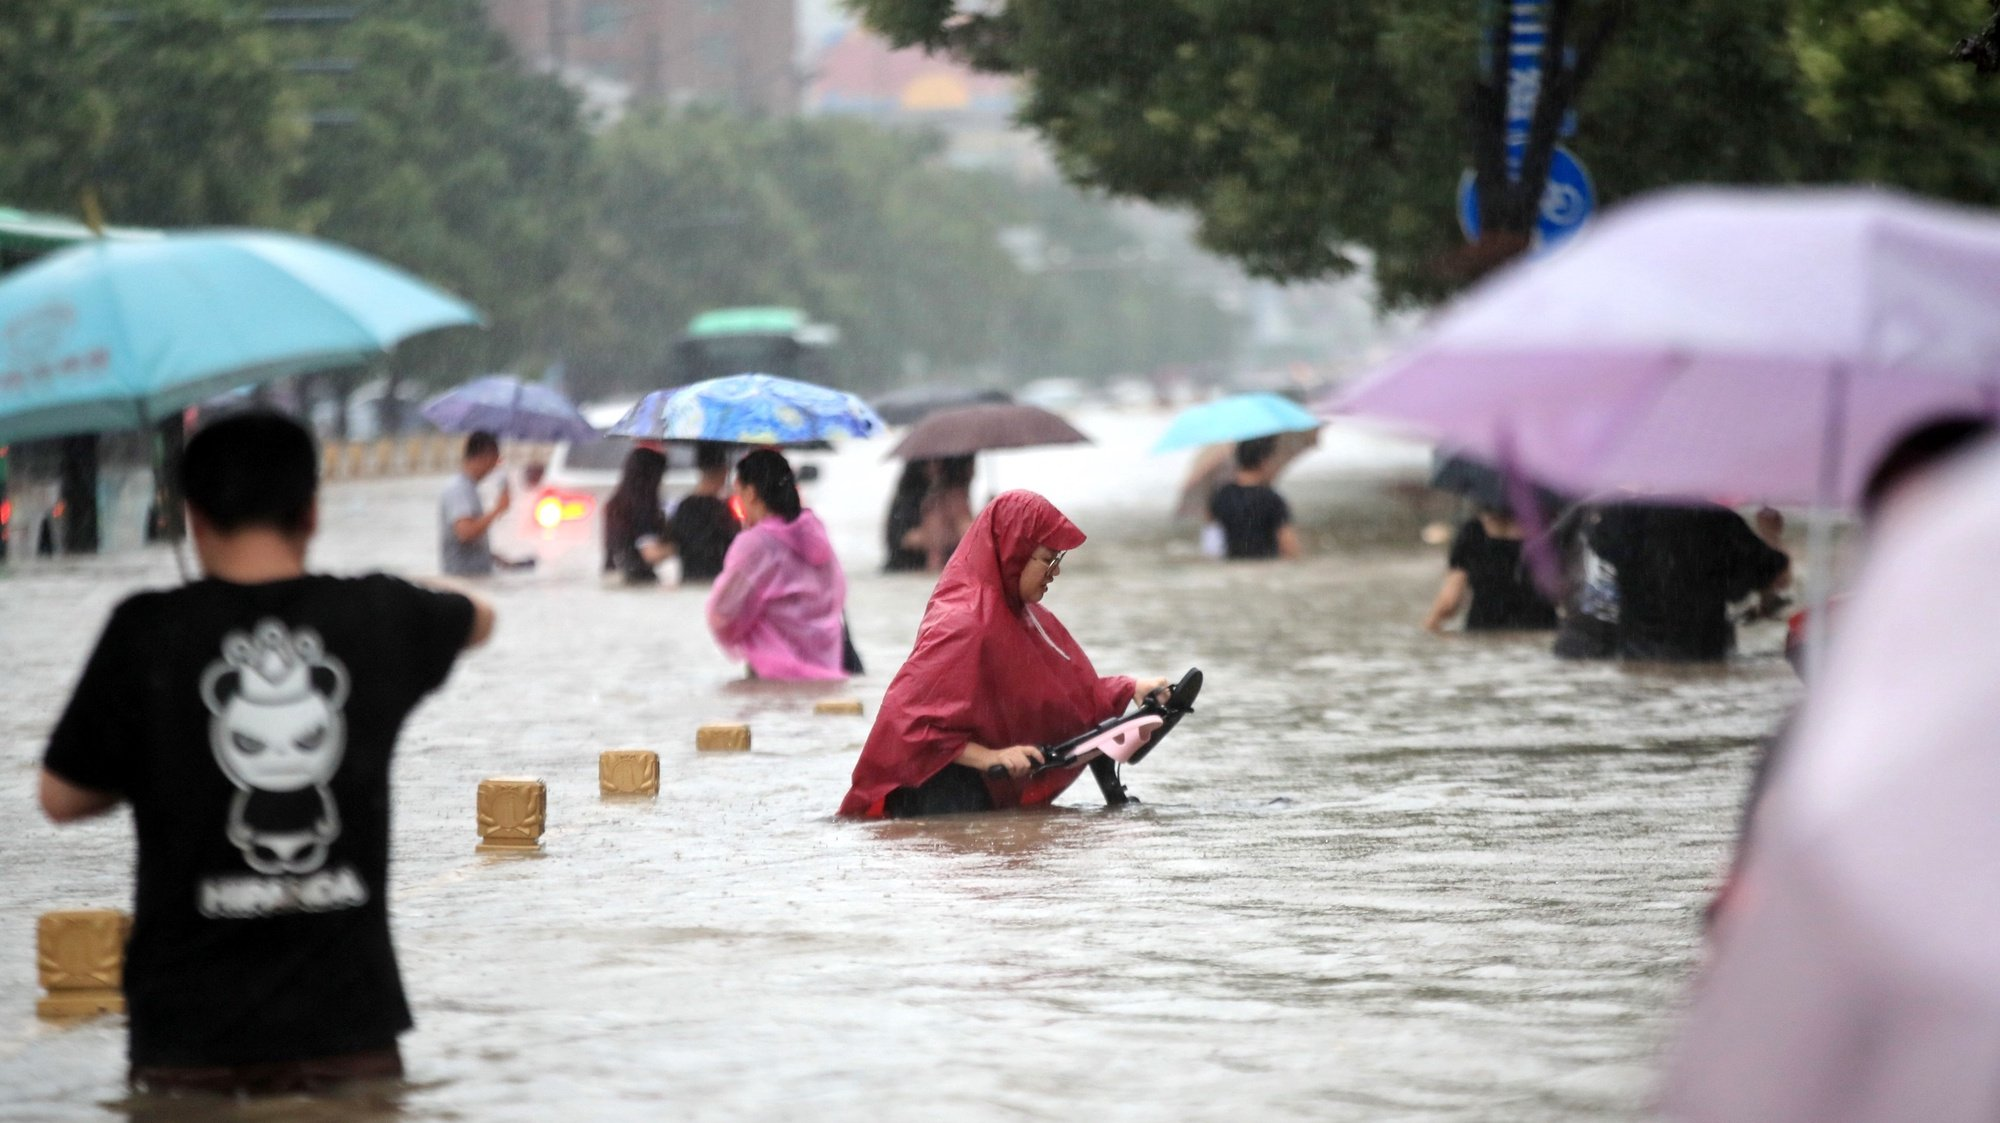 epa09356174 People walk in the flooded road after record downpours in Zhengzhou city in central China's Henan province Tuesday, July 20, 2021 (issued 21 July 2021). Heavy floods in Central China killed 12 in Zhengzhou city due to the rainfall yesterday, 20 July 2021, according to official Chinese media. Over 144,660 people have been affected by heavy rains in Henan Province since July 16, and over 10,000 had to be relocated, the provincial flood control and drought relief headquarters said Tuesday.  EPA/FEATURECHINA CHINA OUT